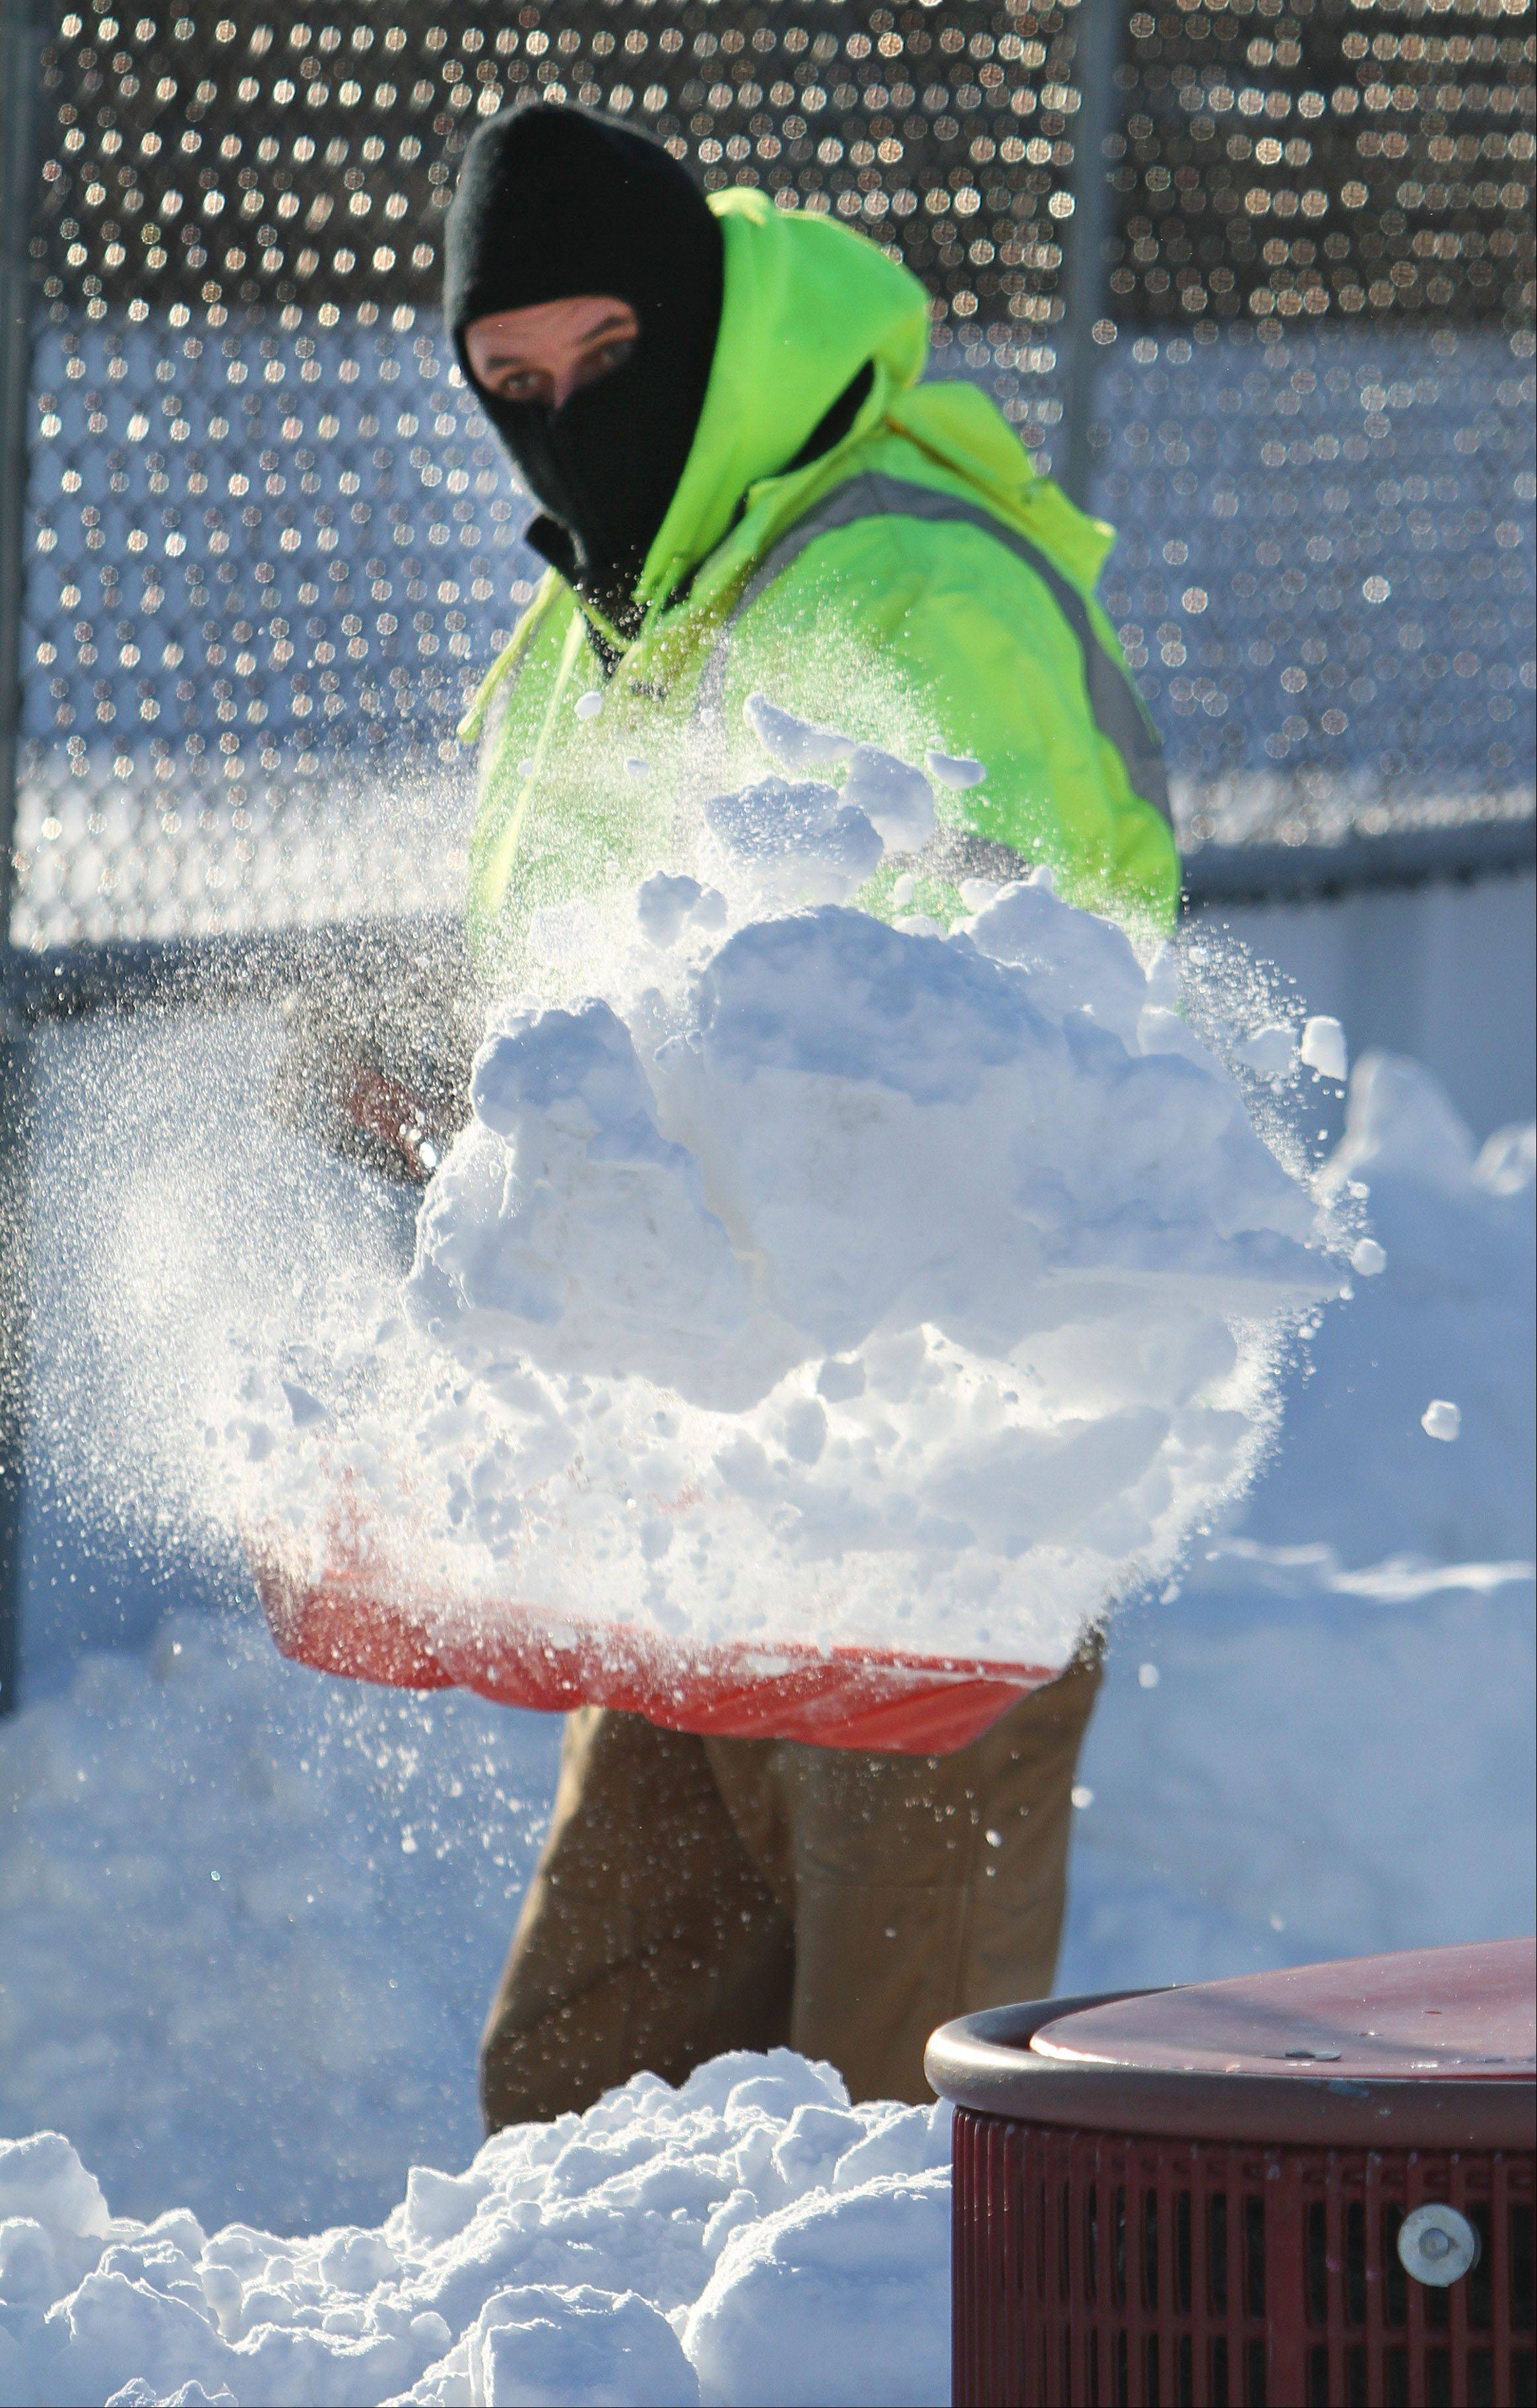 Steve Lundy/slundy@dailyherald.comLibertyville Public Works employee Tom Govekar shovels around the ice rink at Bolander Park in Libertyville as temperatures plummeted Thursday.